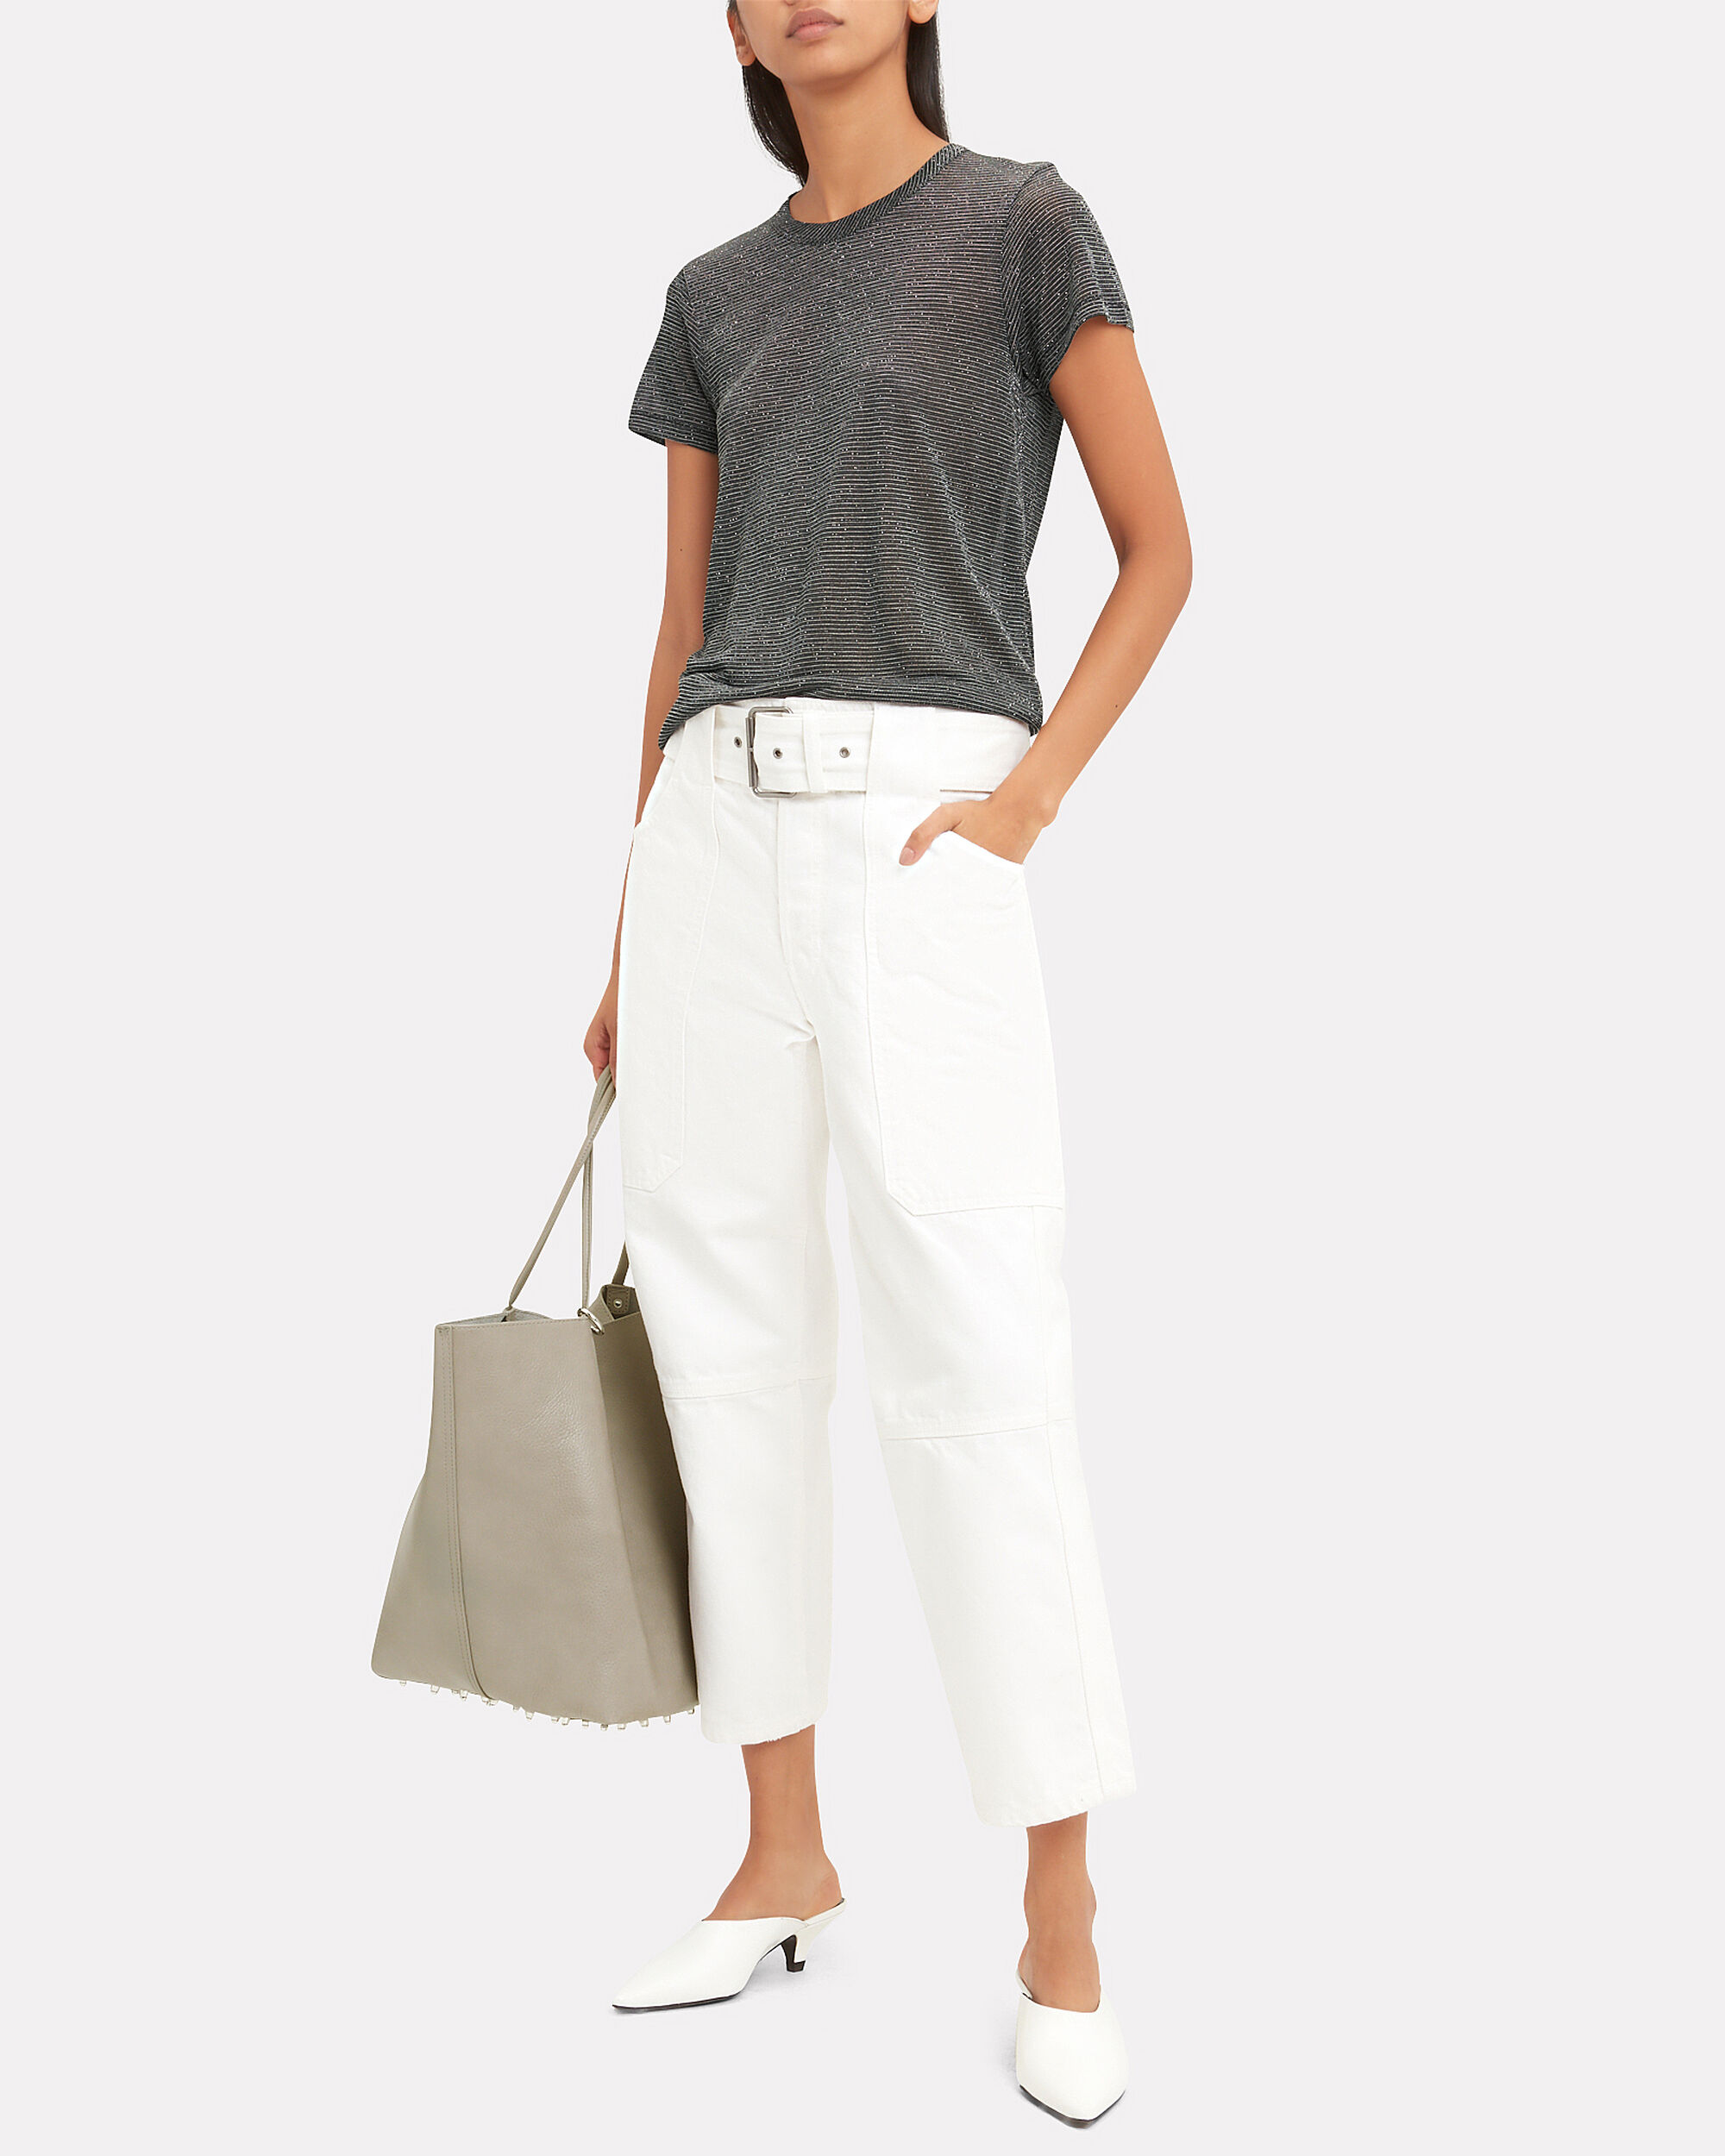 Roxy Small Grey Leather Tote, GREY, hi-res